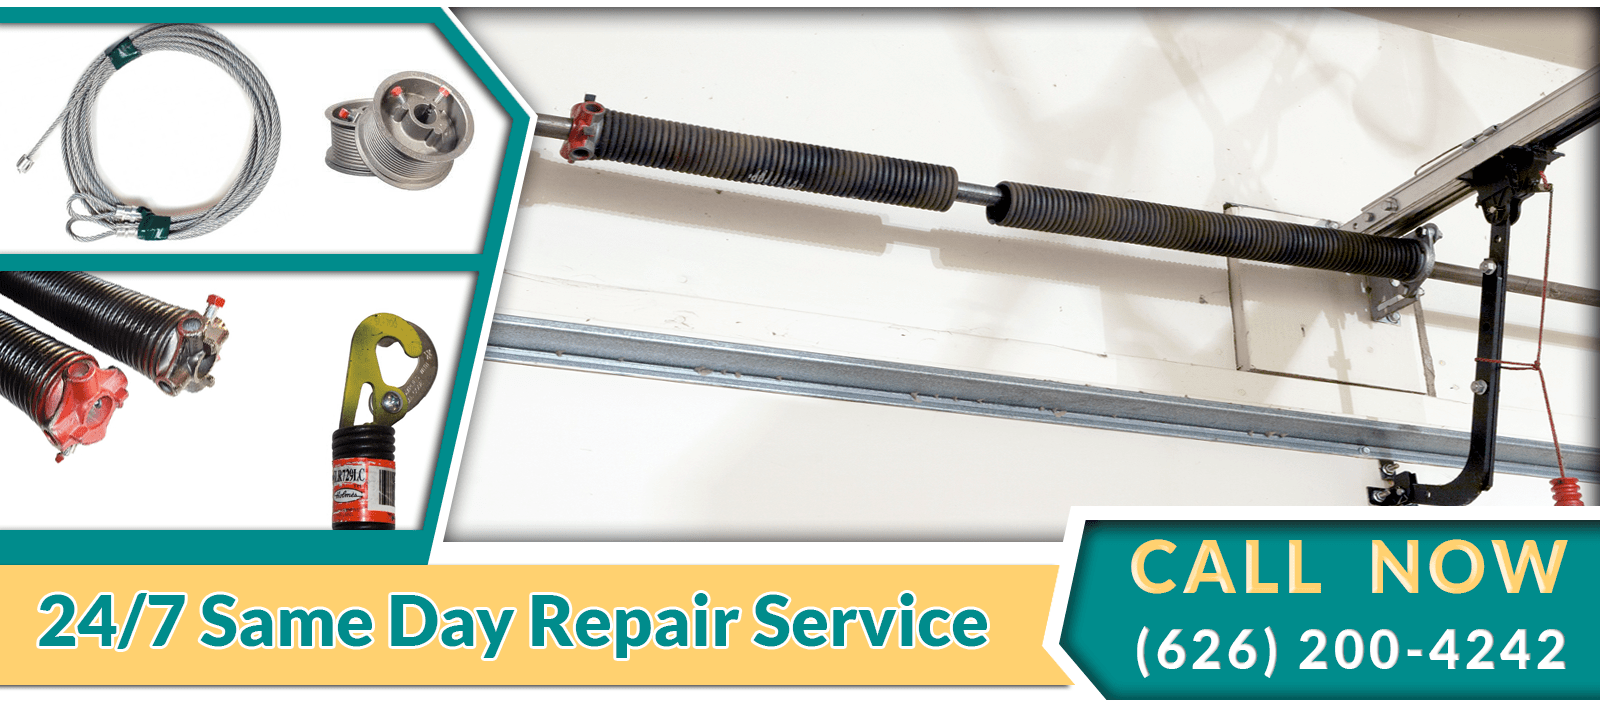 Garage door cable broke - Garage Door Spring Replacement